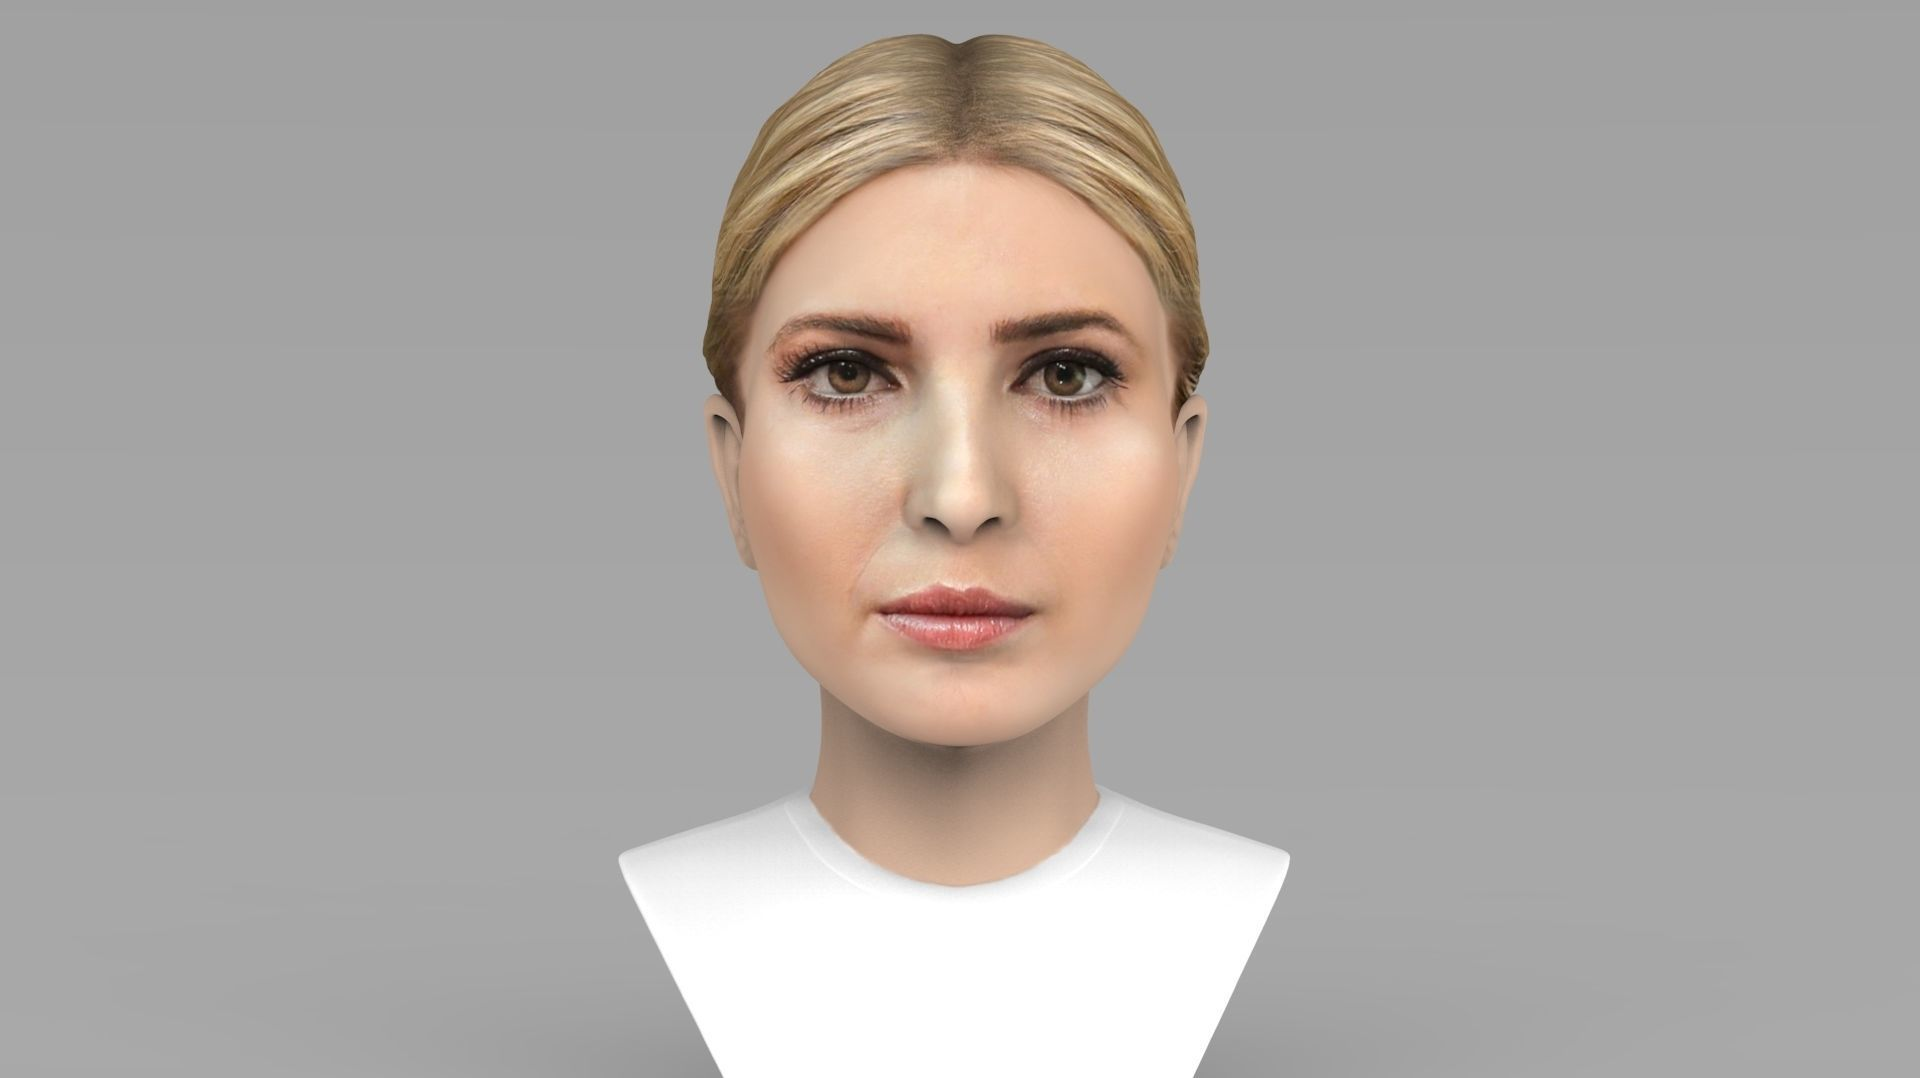 Ivanka Trump bust ready for full color 3D printing